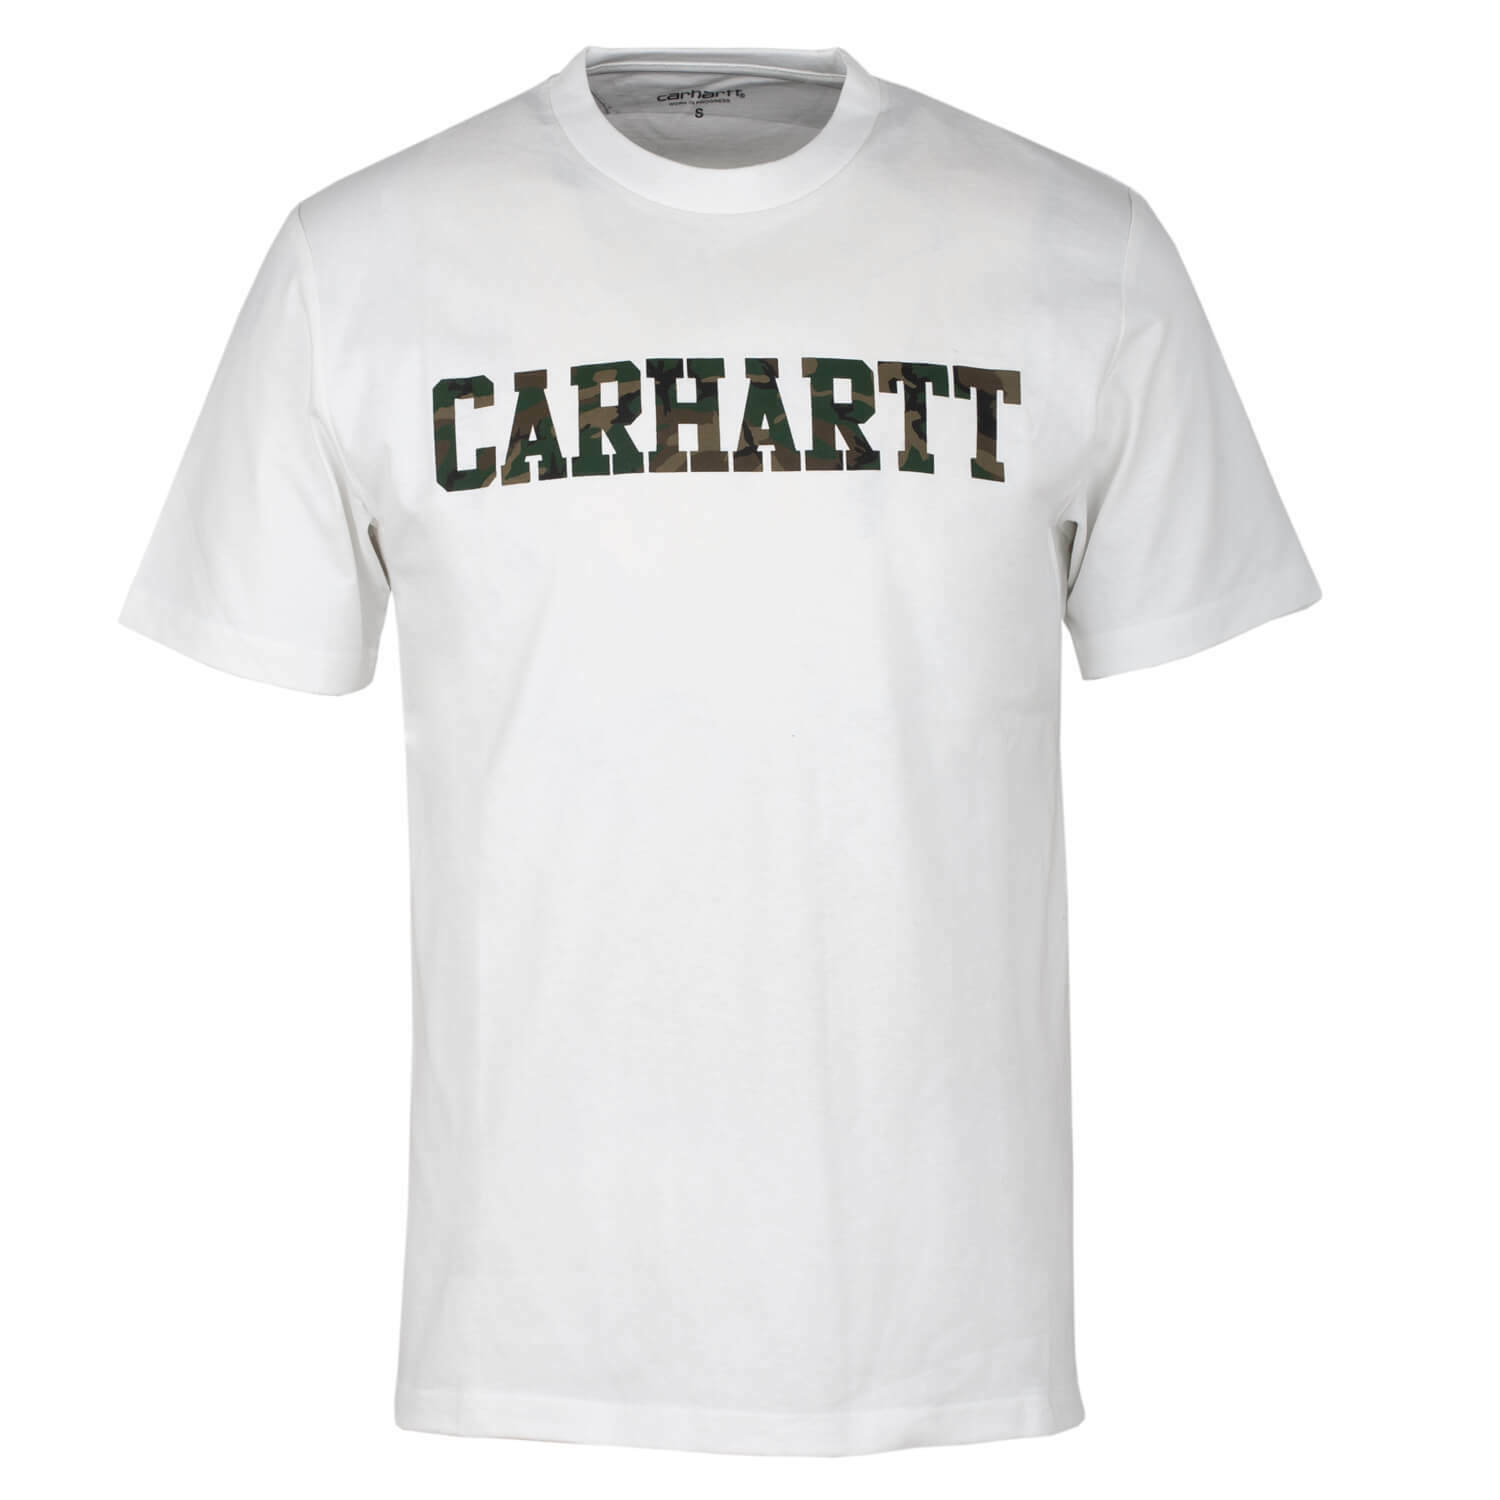 Carhartt College Logo T-Shirt White Camo - Men's T-Shirt with Carhartt Logo